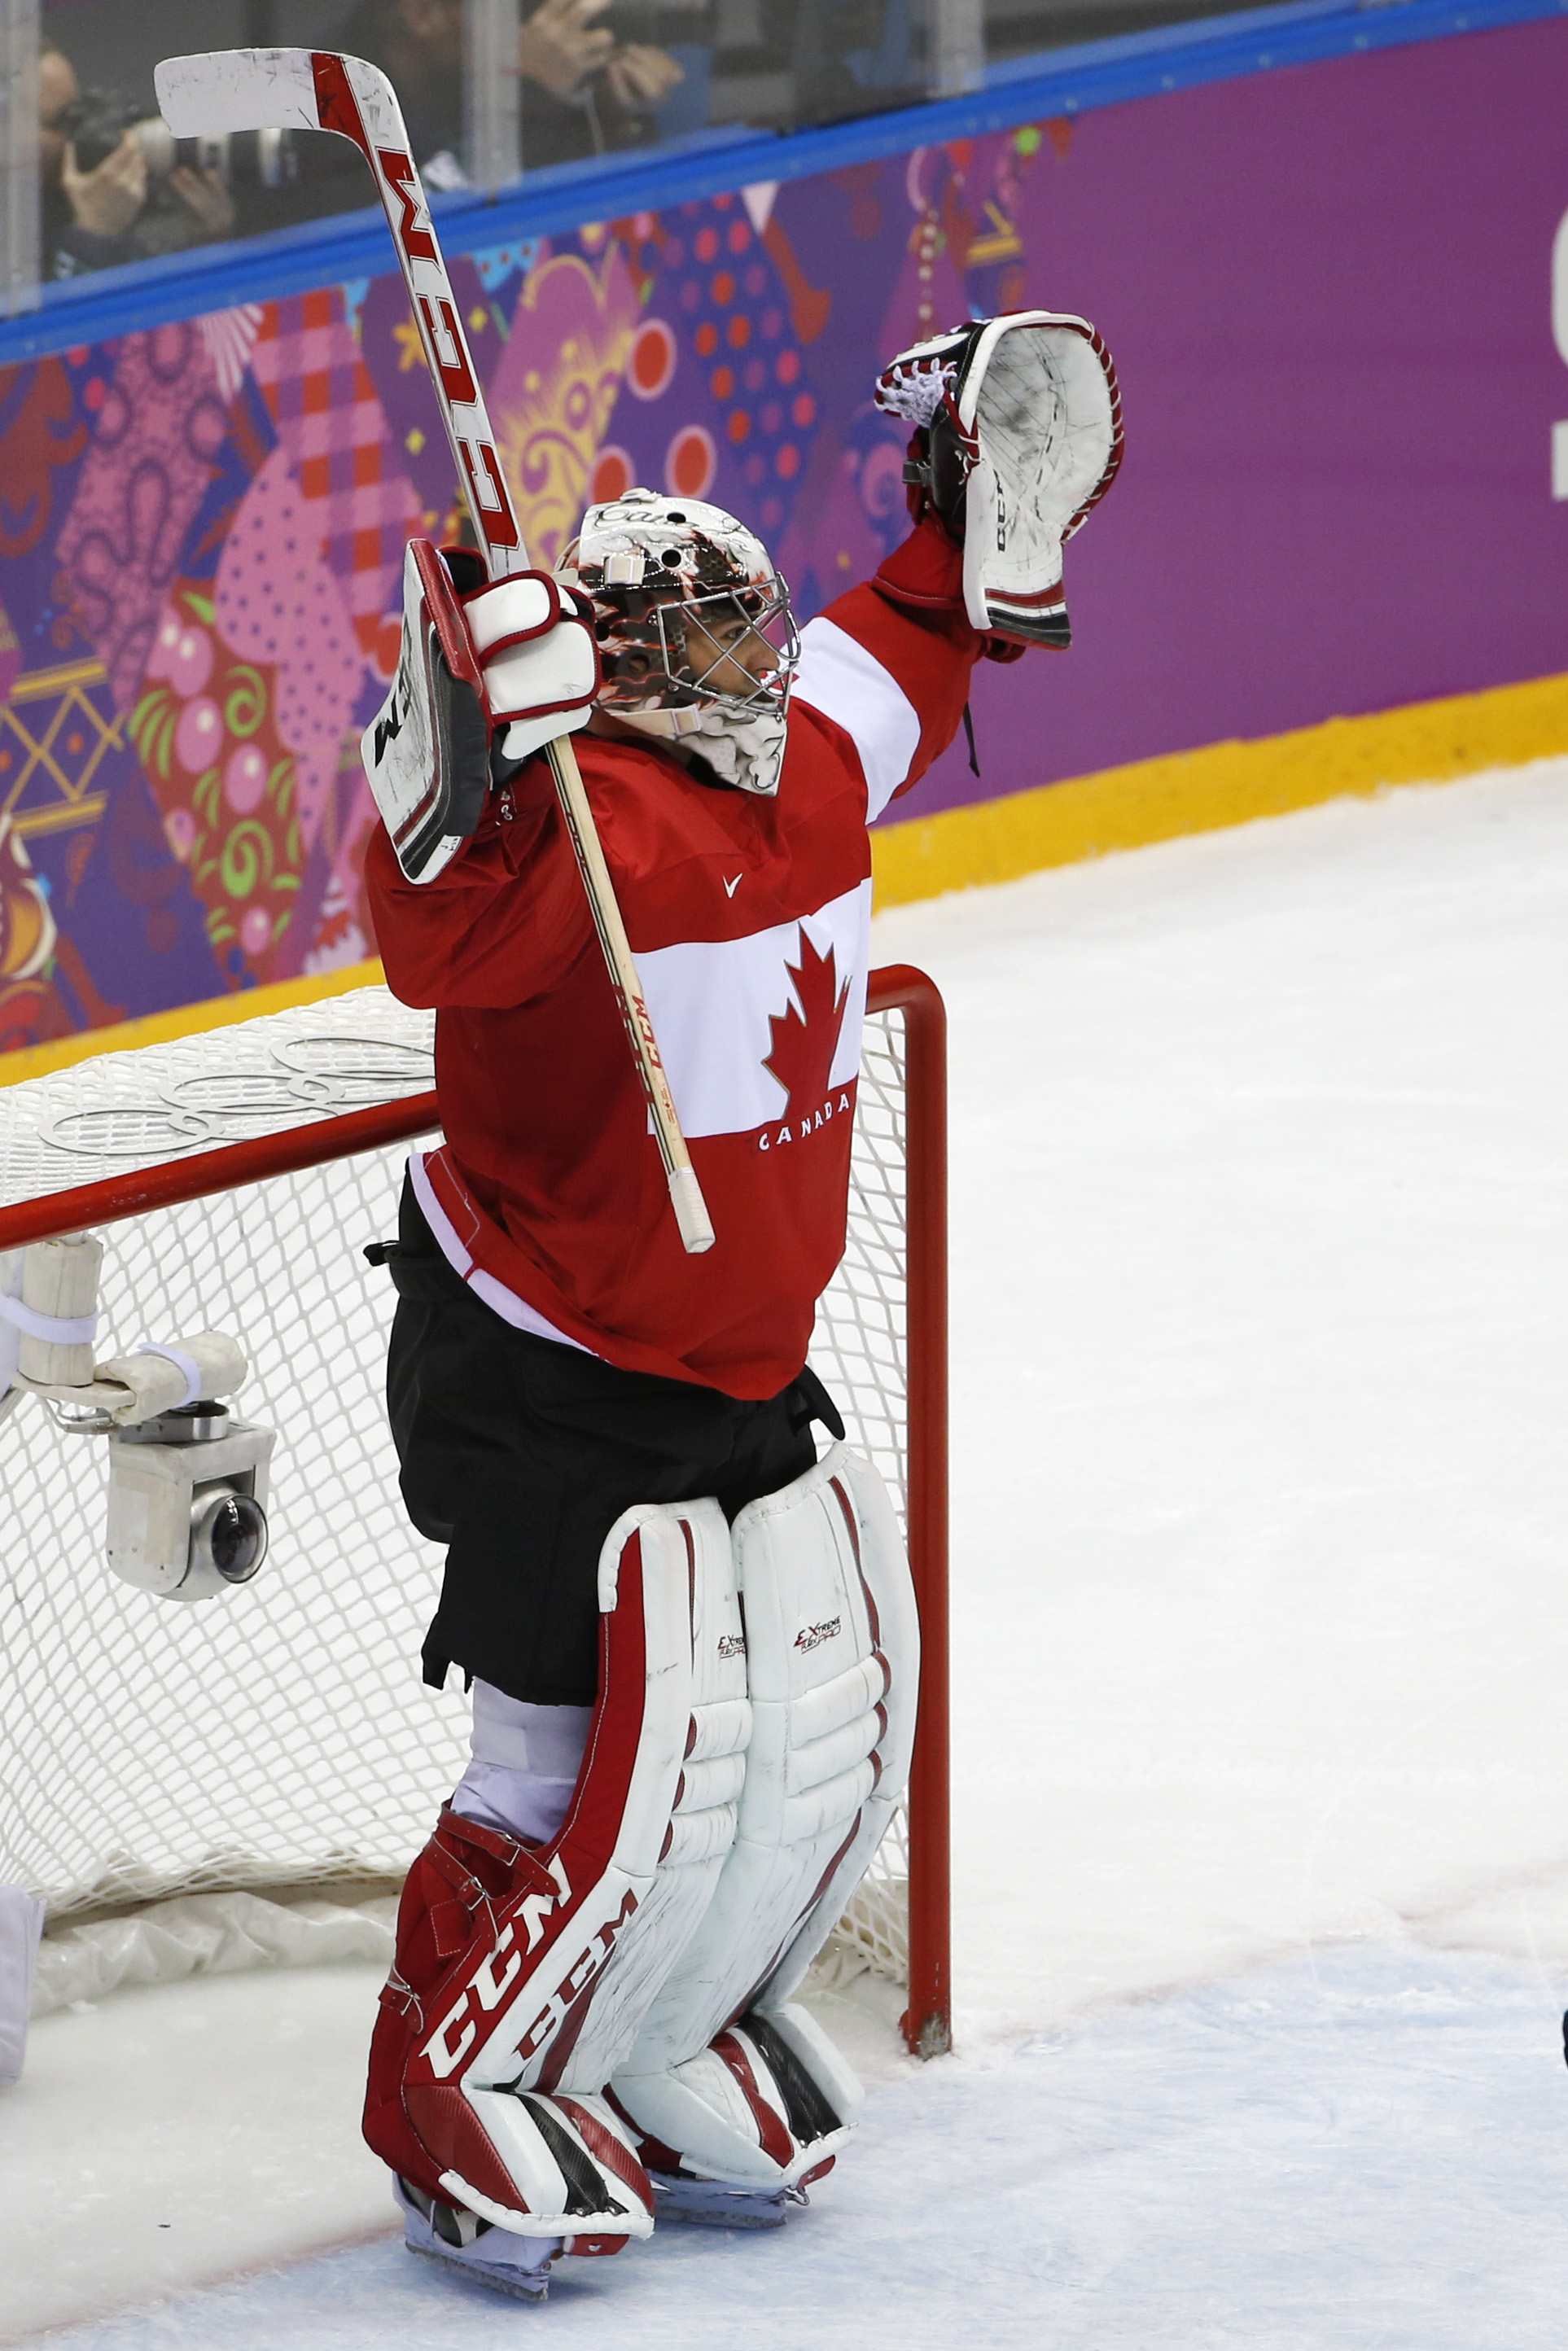 sochi_olympics_ice_hockey_men95501413094_r9764.jpg